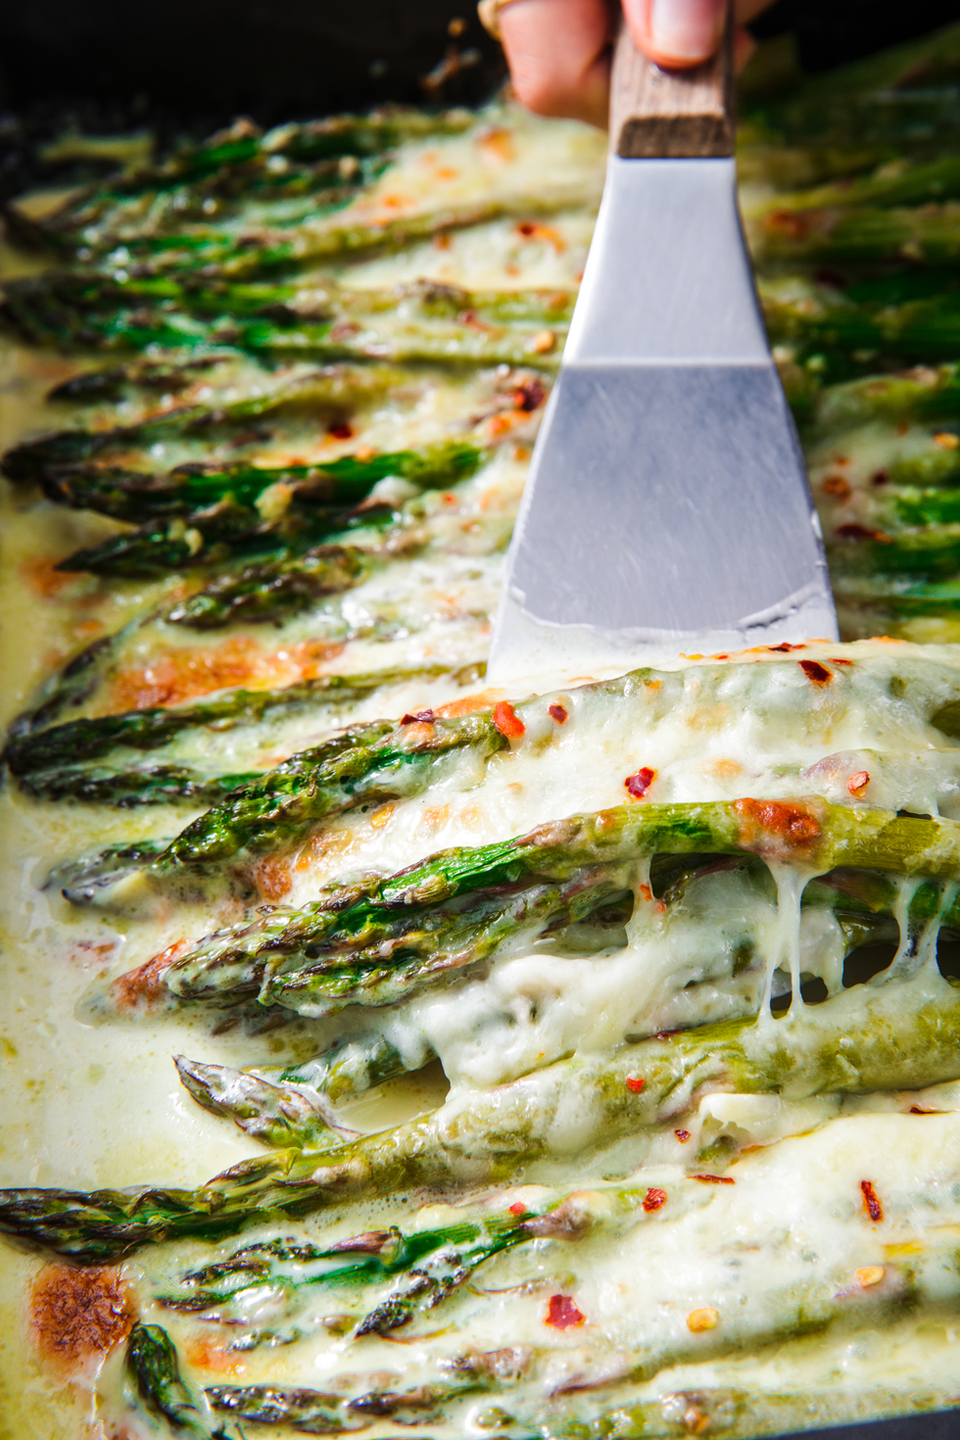 """<p>Our favourite way to prepare asparagus is as a fancy side: Top it with garlic, a little cream, Parmesan, and mozzarella and bake it until the cheese is bubbly and golden and the asparagus is tender. This will be gone in seconds.</p><p>Get the <a href=""""https://www.delish.com/uk/cooking/recipes/a31728813/cheesy-baked-asparagus-recipe/"""" rel=""""nofollow noopener"""" target=""""_blank"""" data-ylk=""""slk:Cheesy Baked Asparagus"""" class=""""link rapid-noclick-resp"""">Cheesy Baked Asparagus</a> recipe.</p>"""